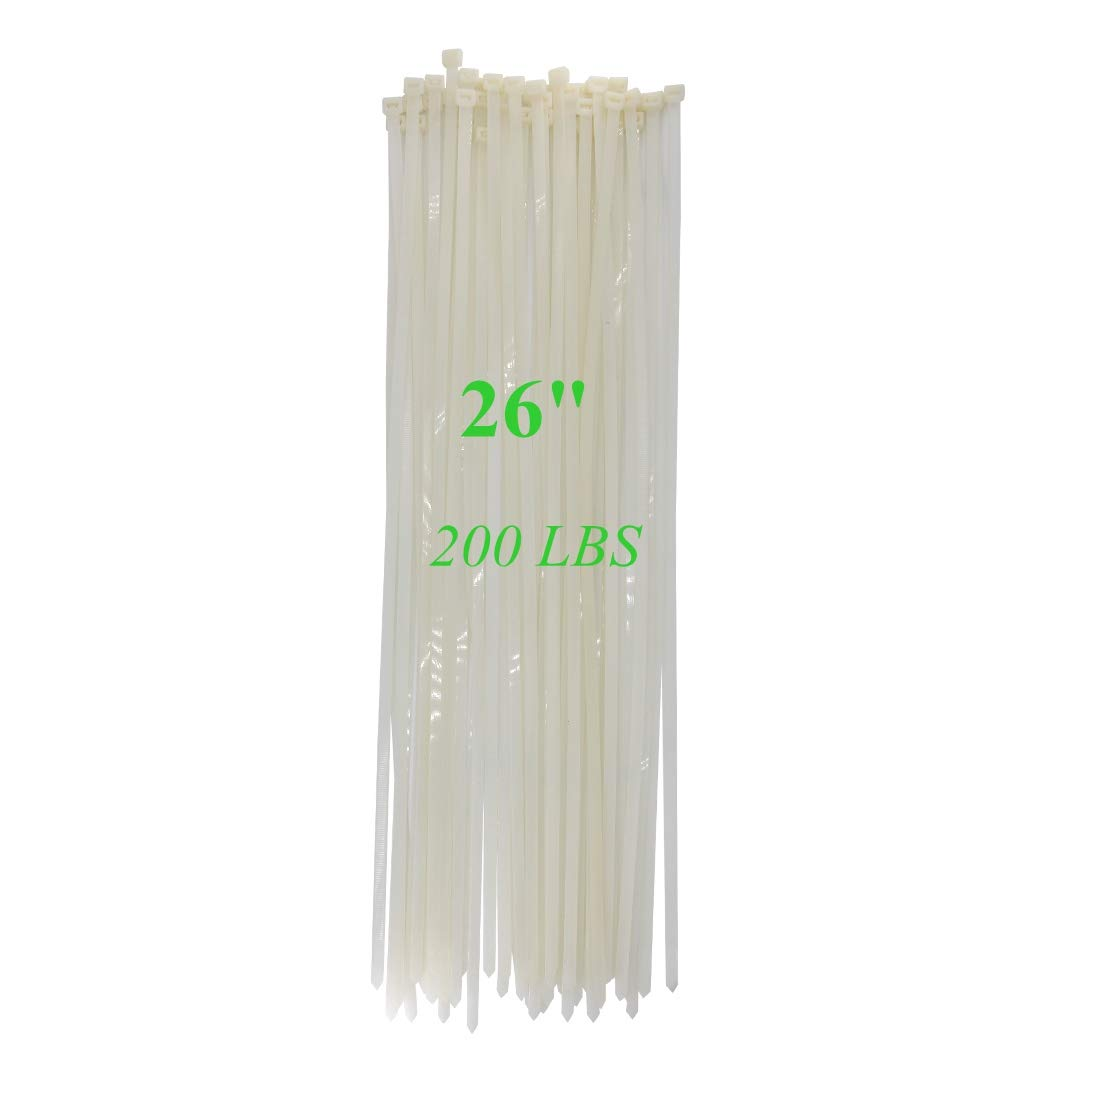 """Long Heavy Duty 26 Inch Nylon Zip Cable Ties Clear-Large 200 LBS Tensile Strength-Heavy Duty Industrial Durable Strong Cable Ties- 50 Pack - Indoor Outdoor Garden Use(26"""",200LB, White)"""